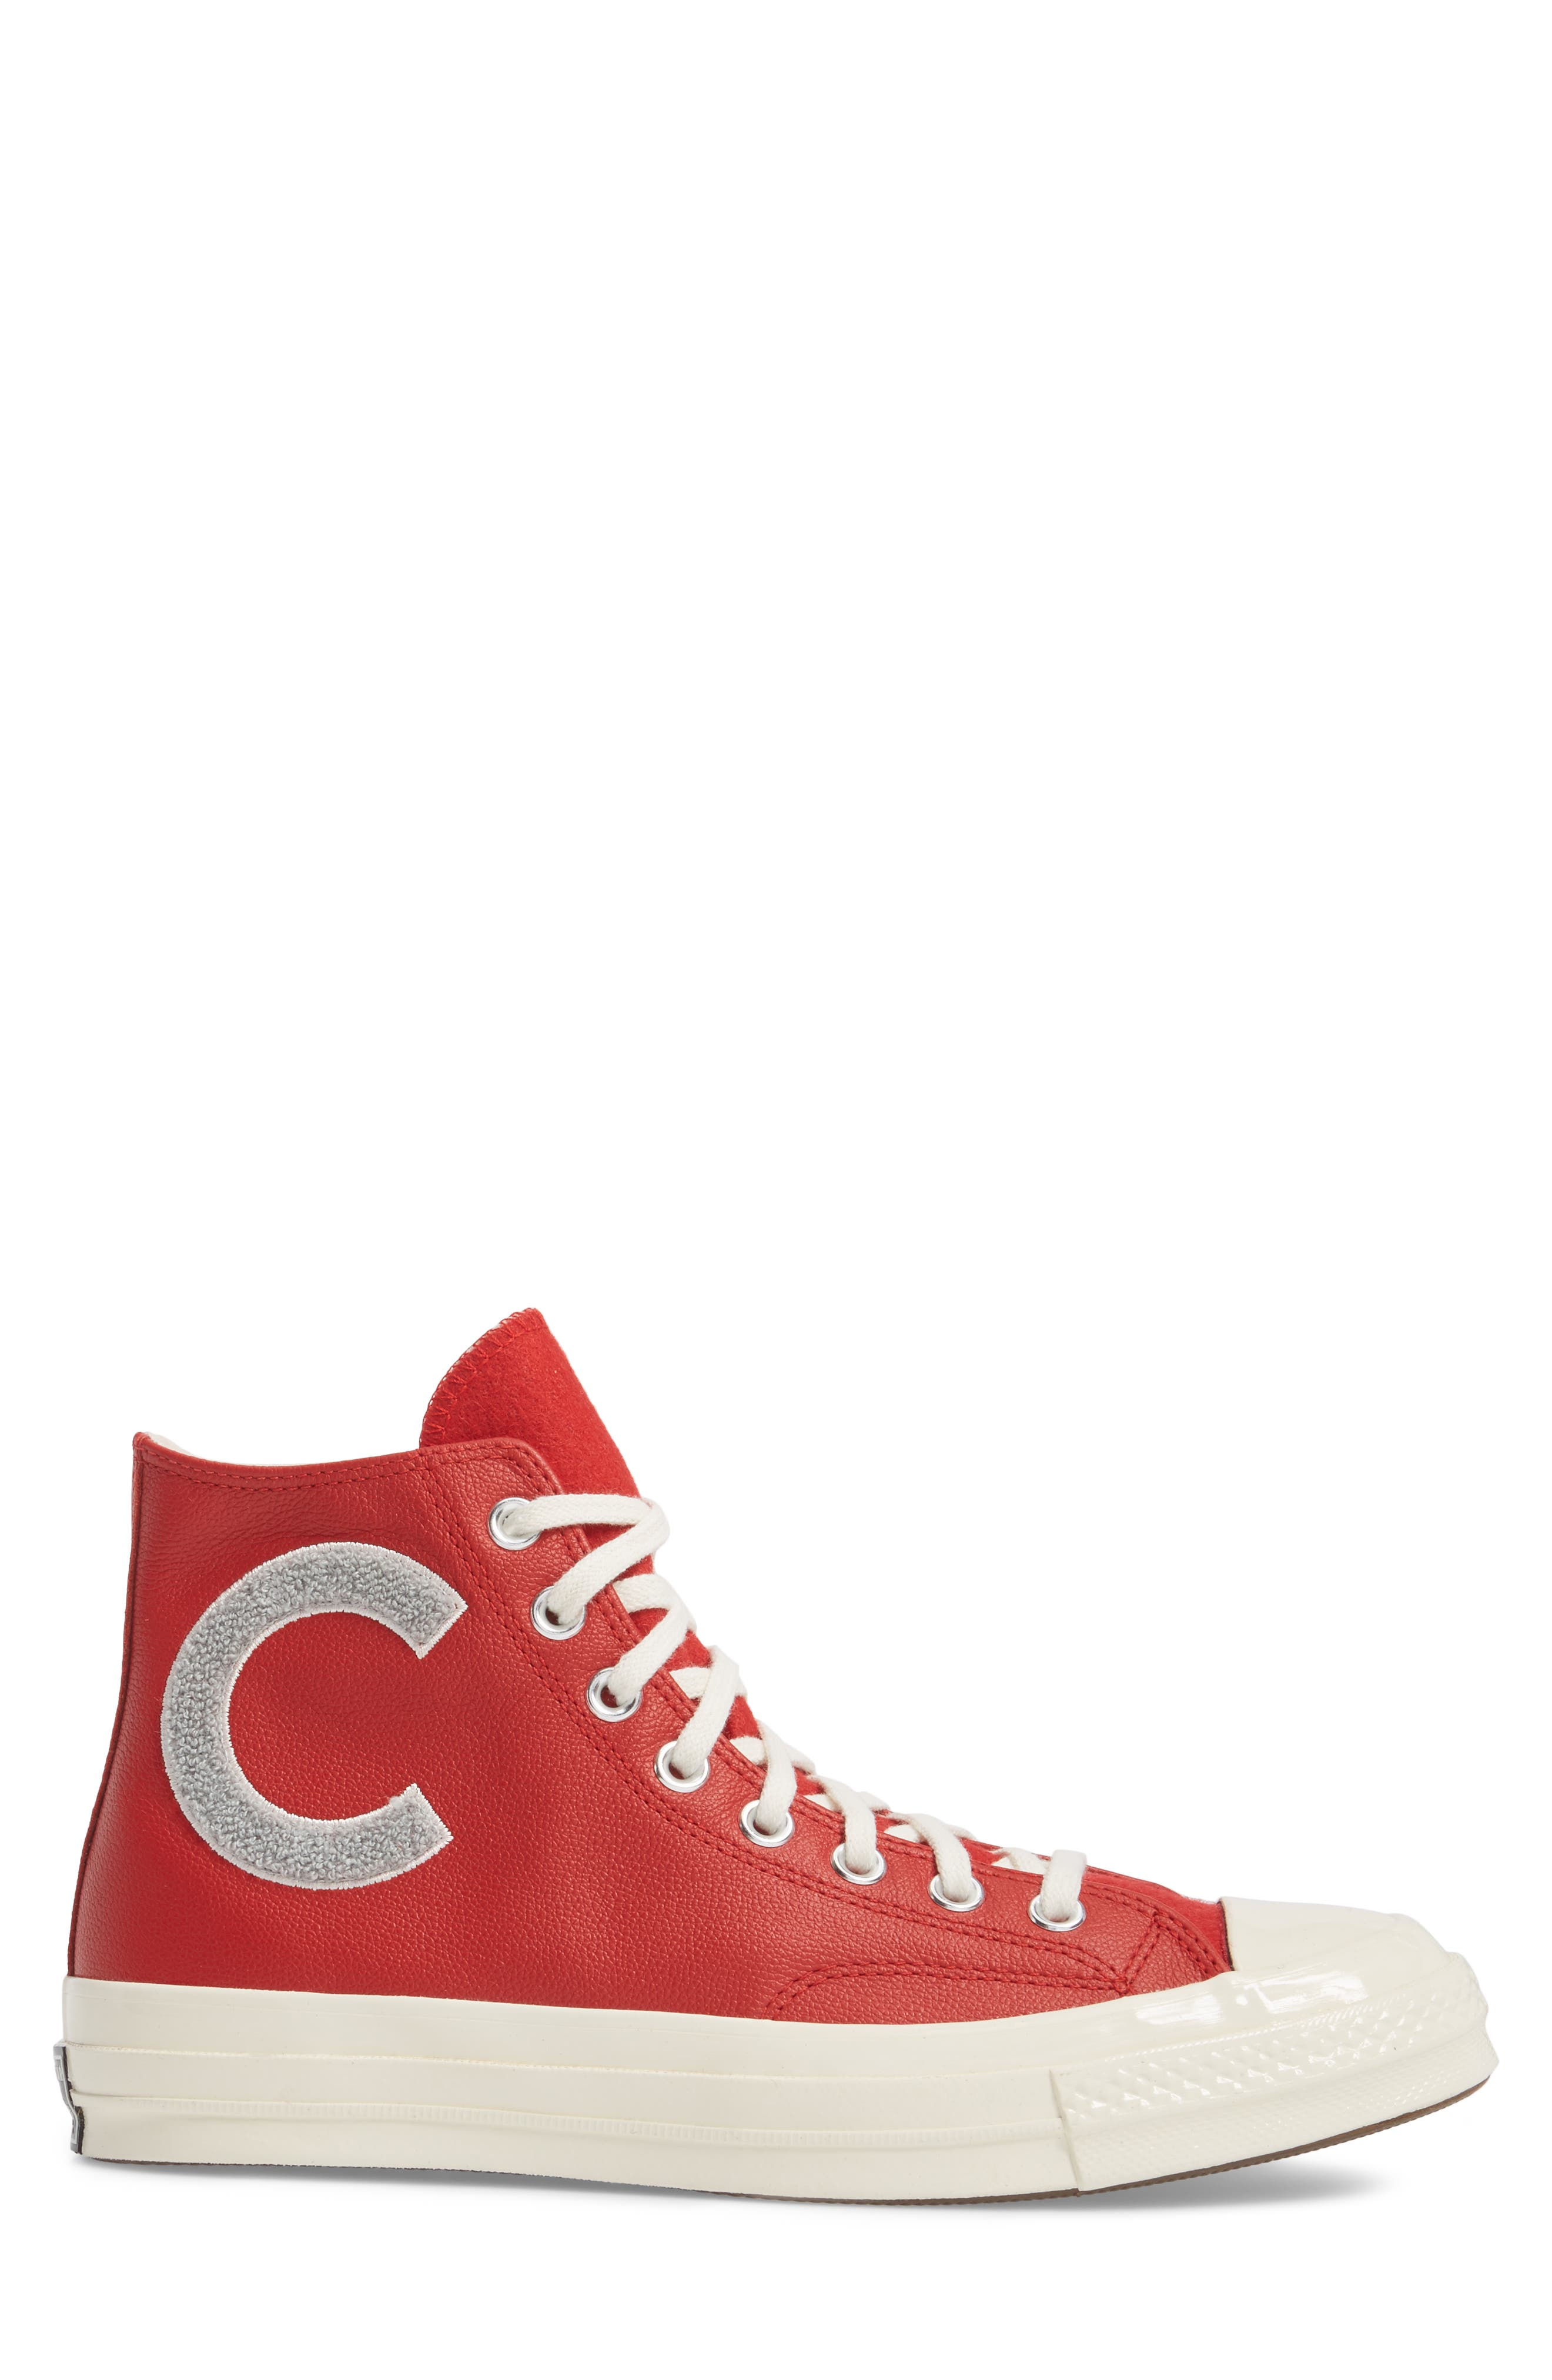 Chuck Taylor<sup>®</sup> All Star<sup>®</sup> Wordmark High Top Sneaker,                             Alternate thumbnail 3, color,                             Enamel Red Leather